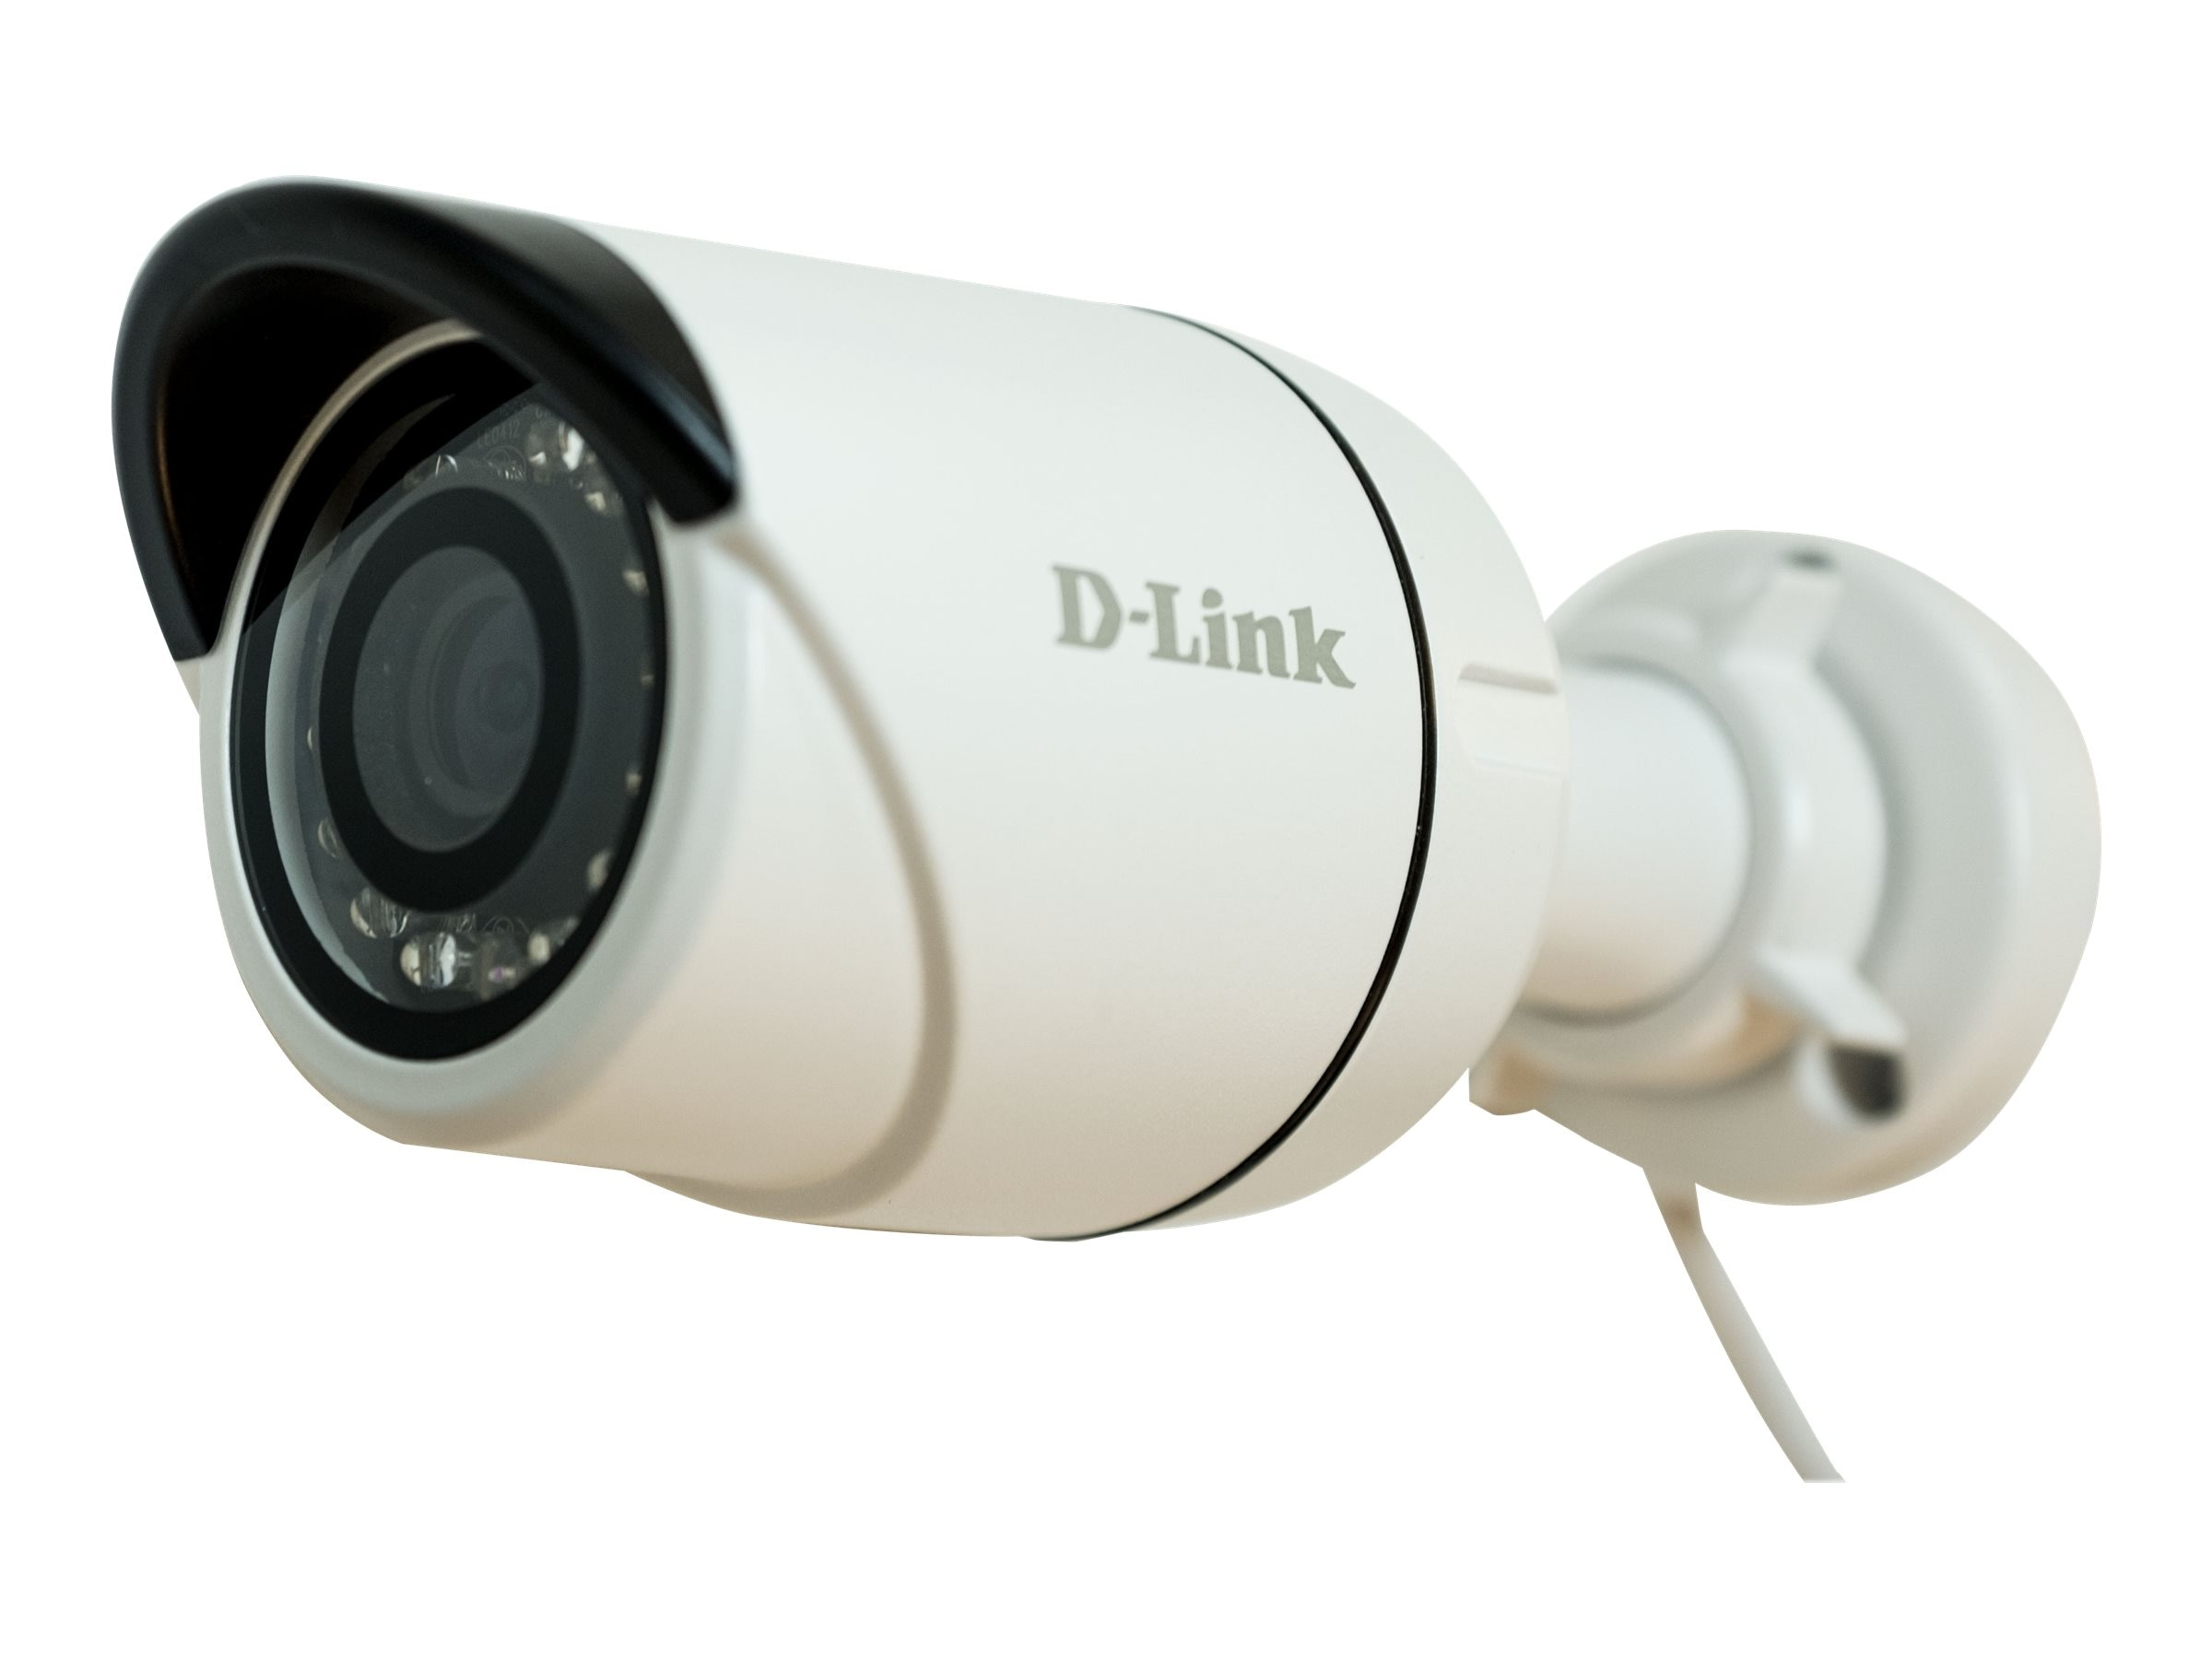 D-Link 3MP Vigilance Full HD Outdoor PoE Mini Bullet Camera, White, DCS-4703E